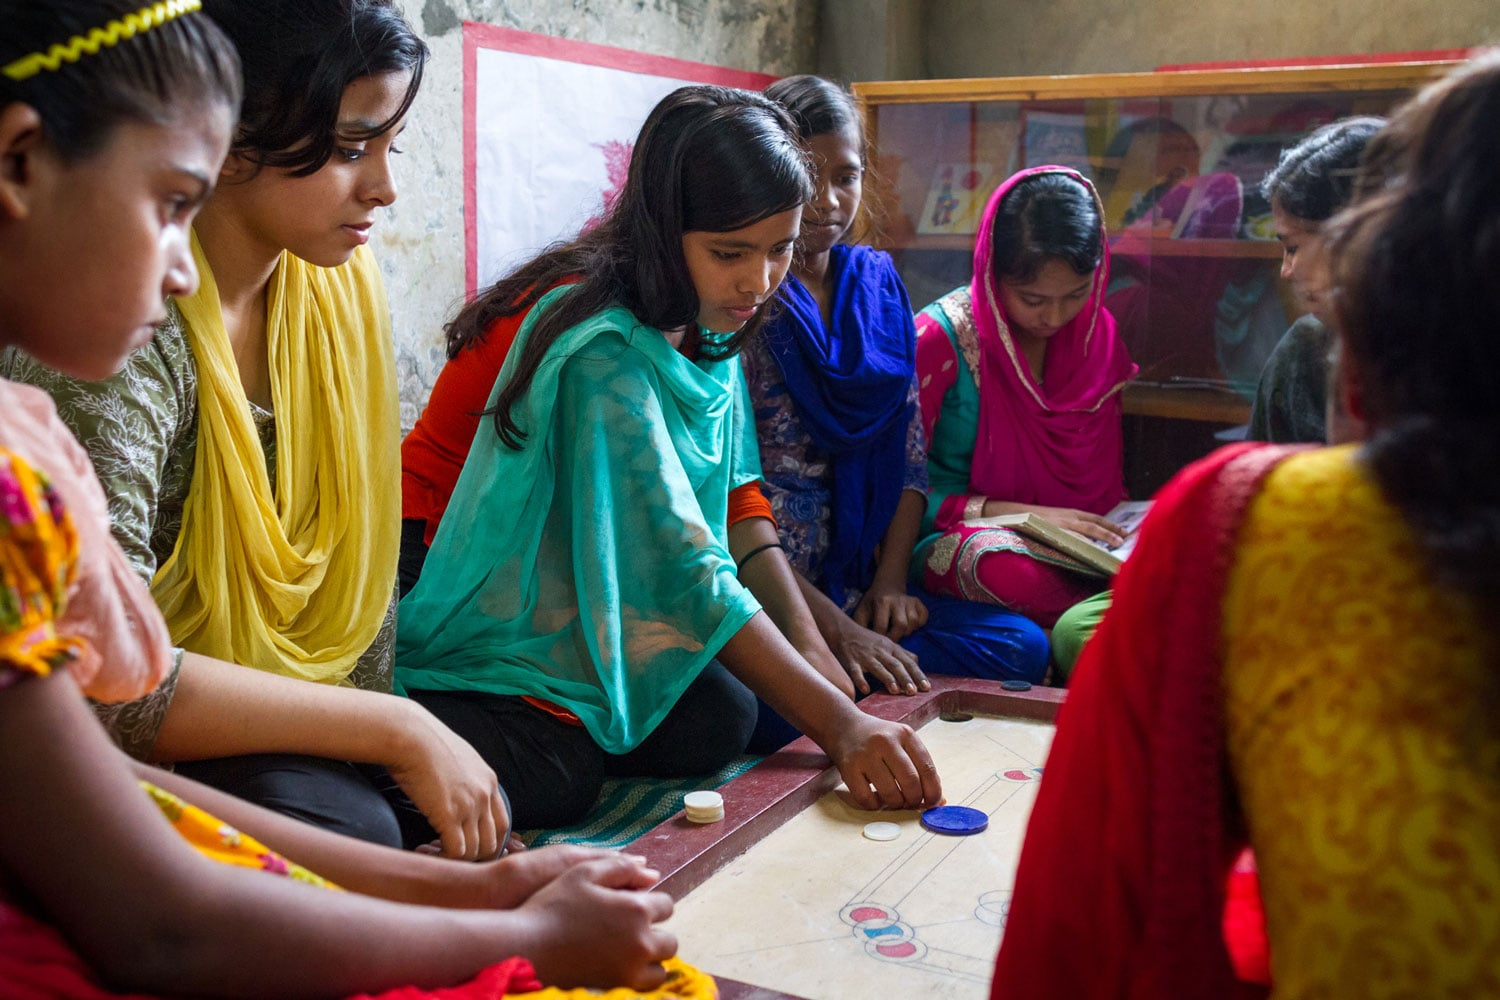 Moni plays a game with friends at a UNICEF-supported Adolescent Club near her home in Dhaka's Duaripara slum.